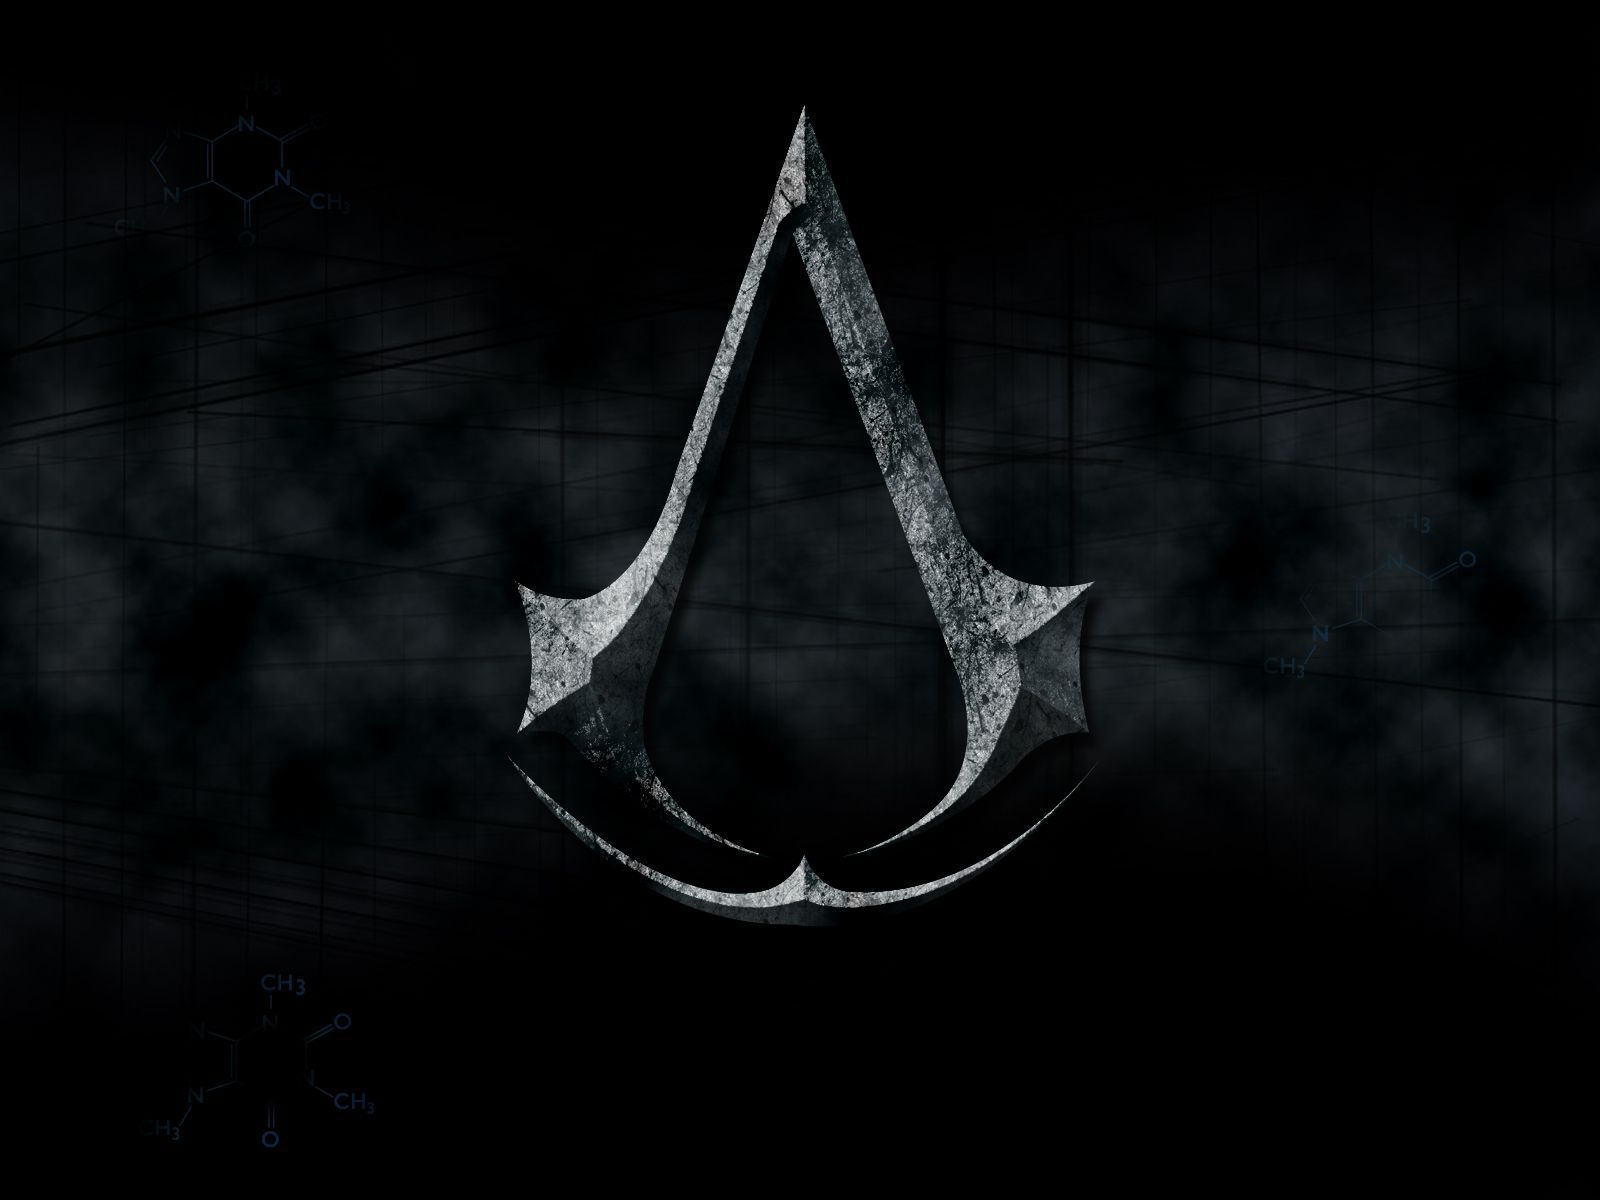 Assassin S Creed Logo Wallpapers Top Free Assassin S Creed